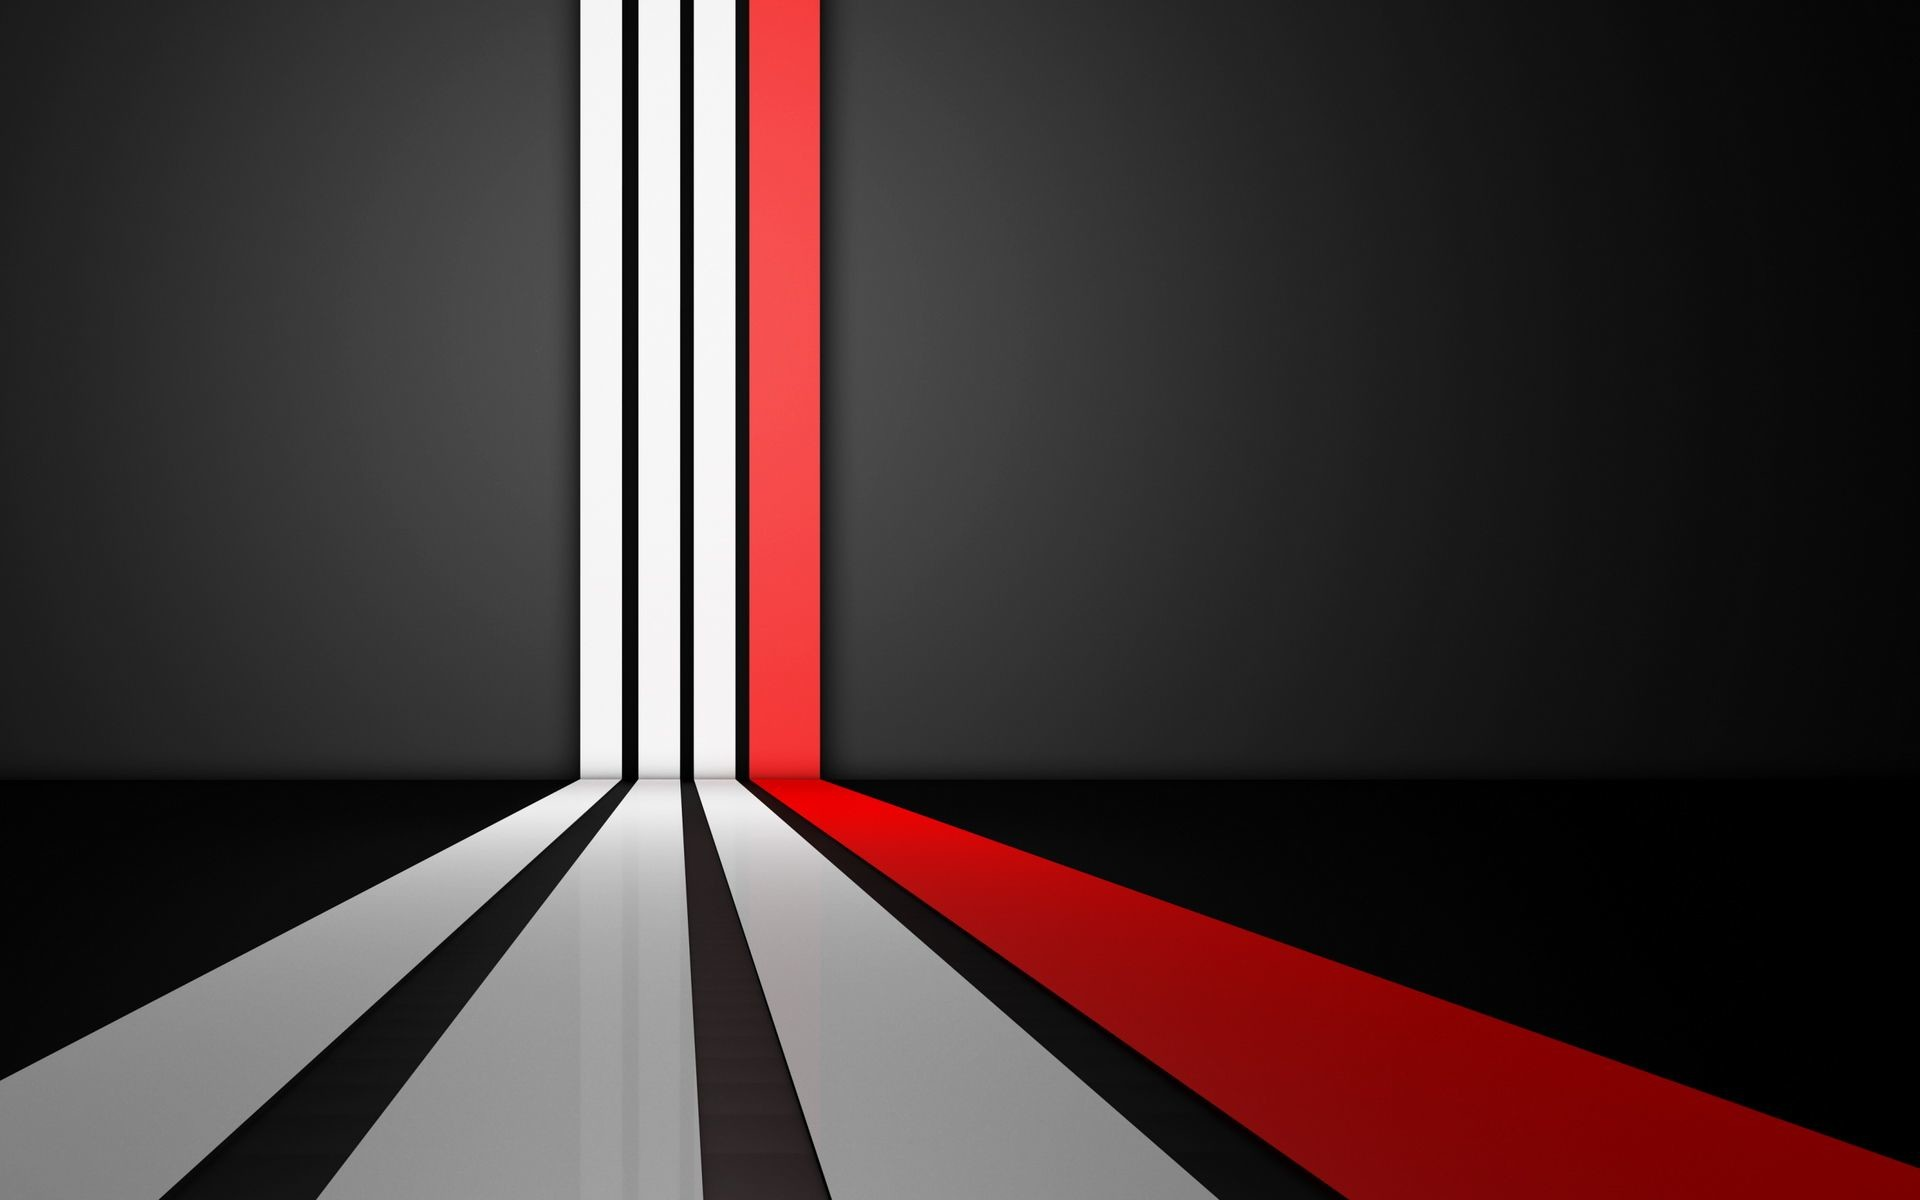 1920x1200 Black And White And Red Abstract Wallpapers